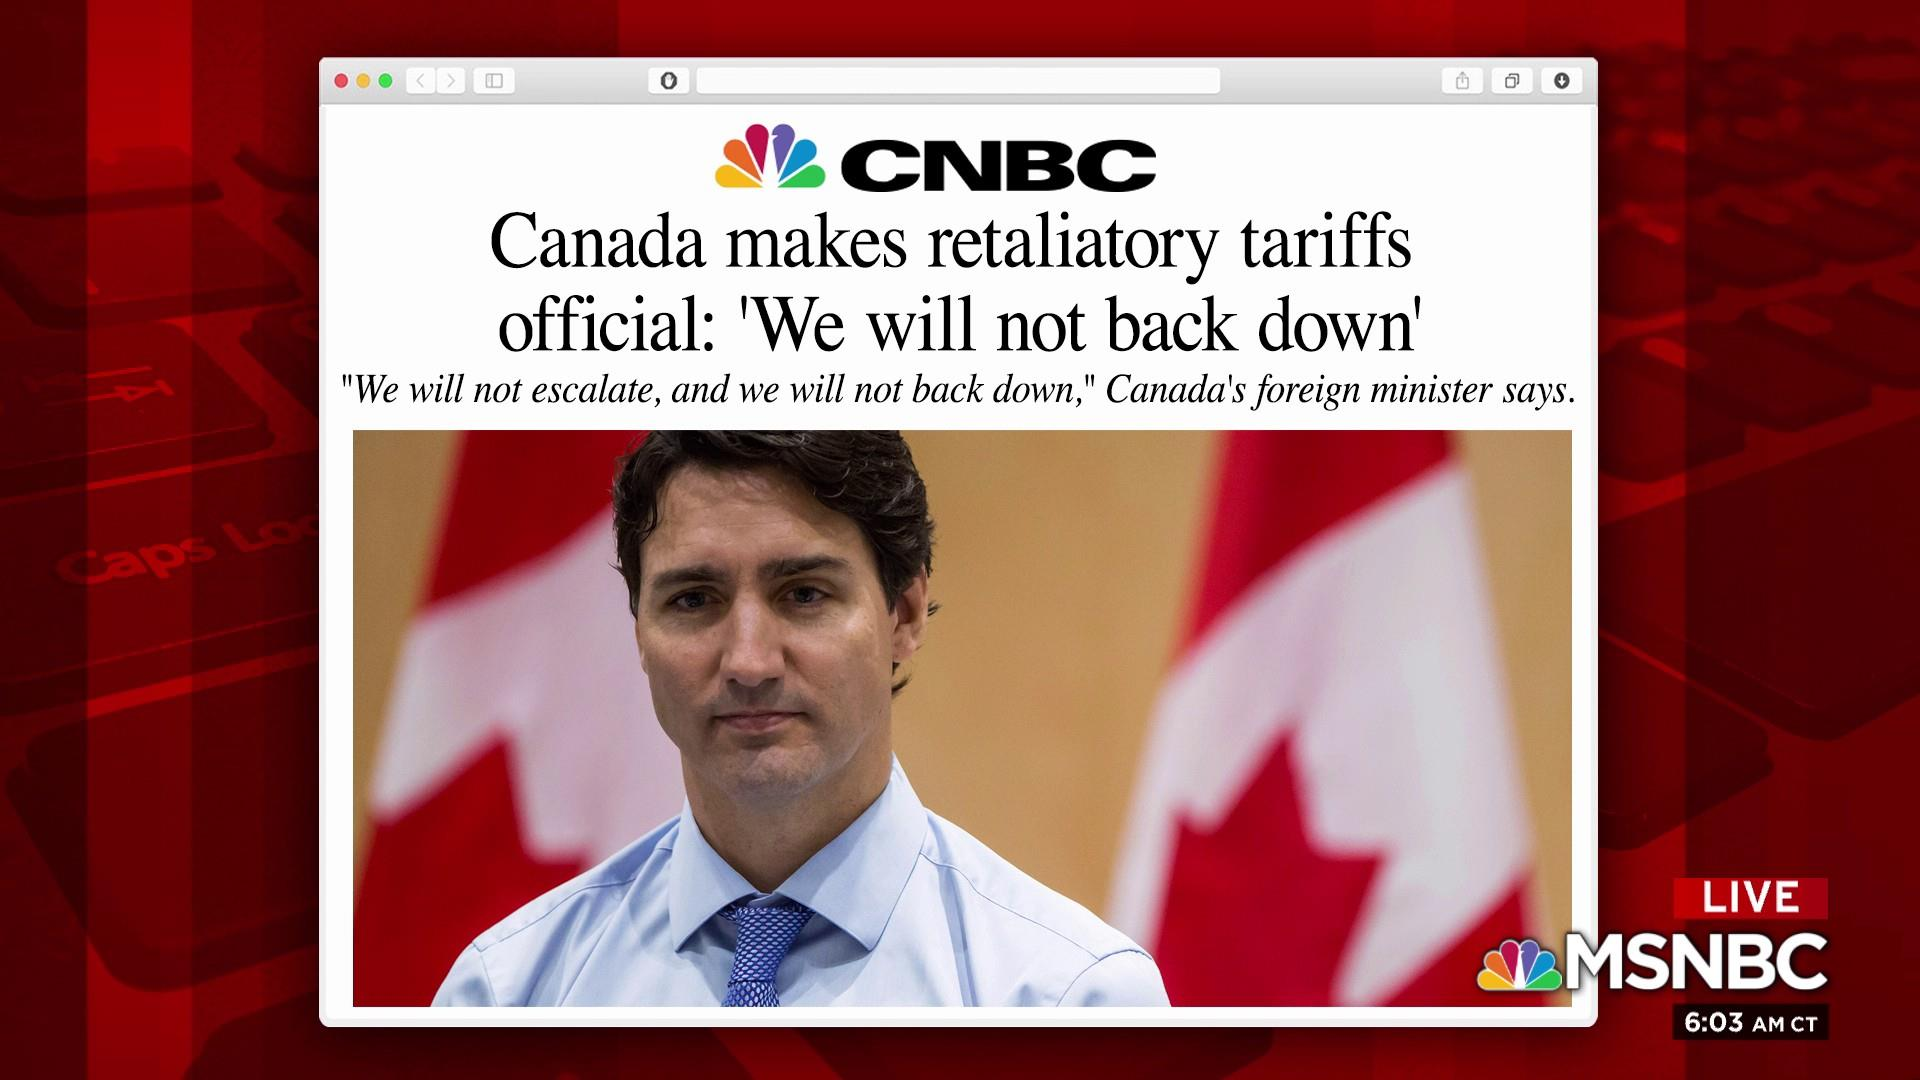 Canada fights back against the trade 'war'